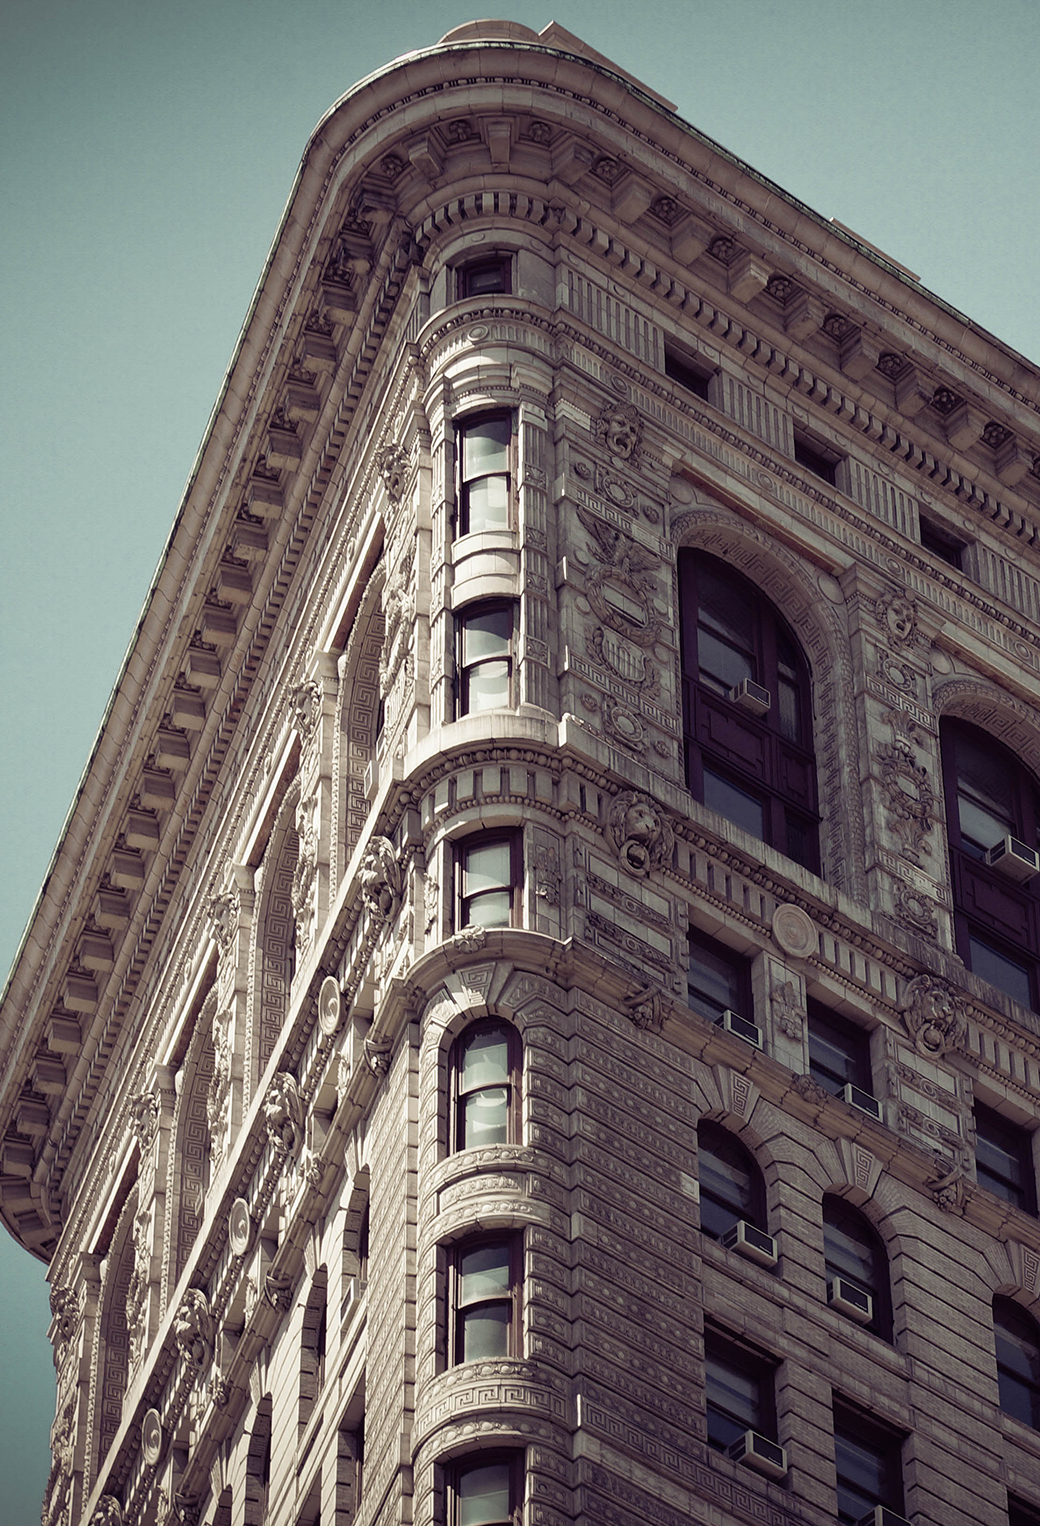 Flatiron gramercy architecture 3wallpapers iphone for Iphone 7 architecture